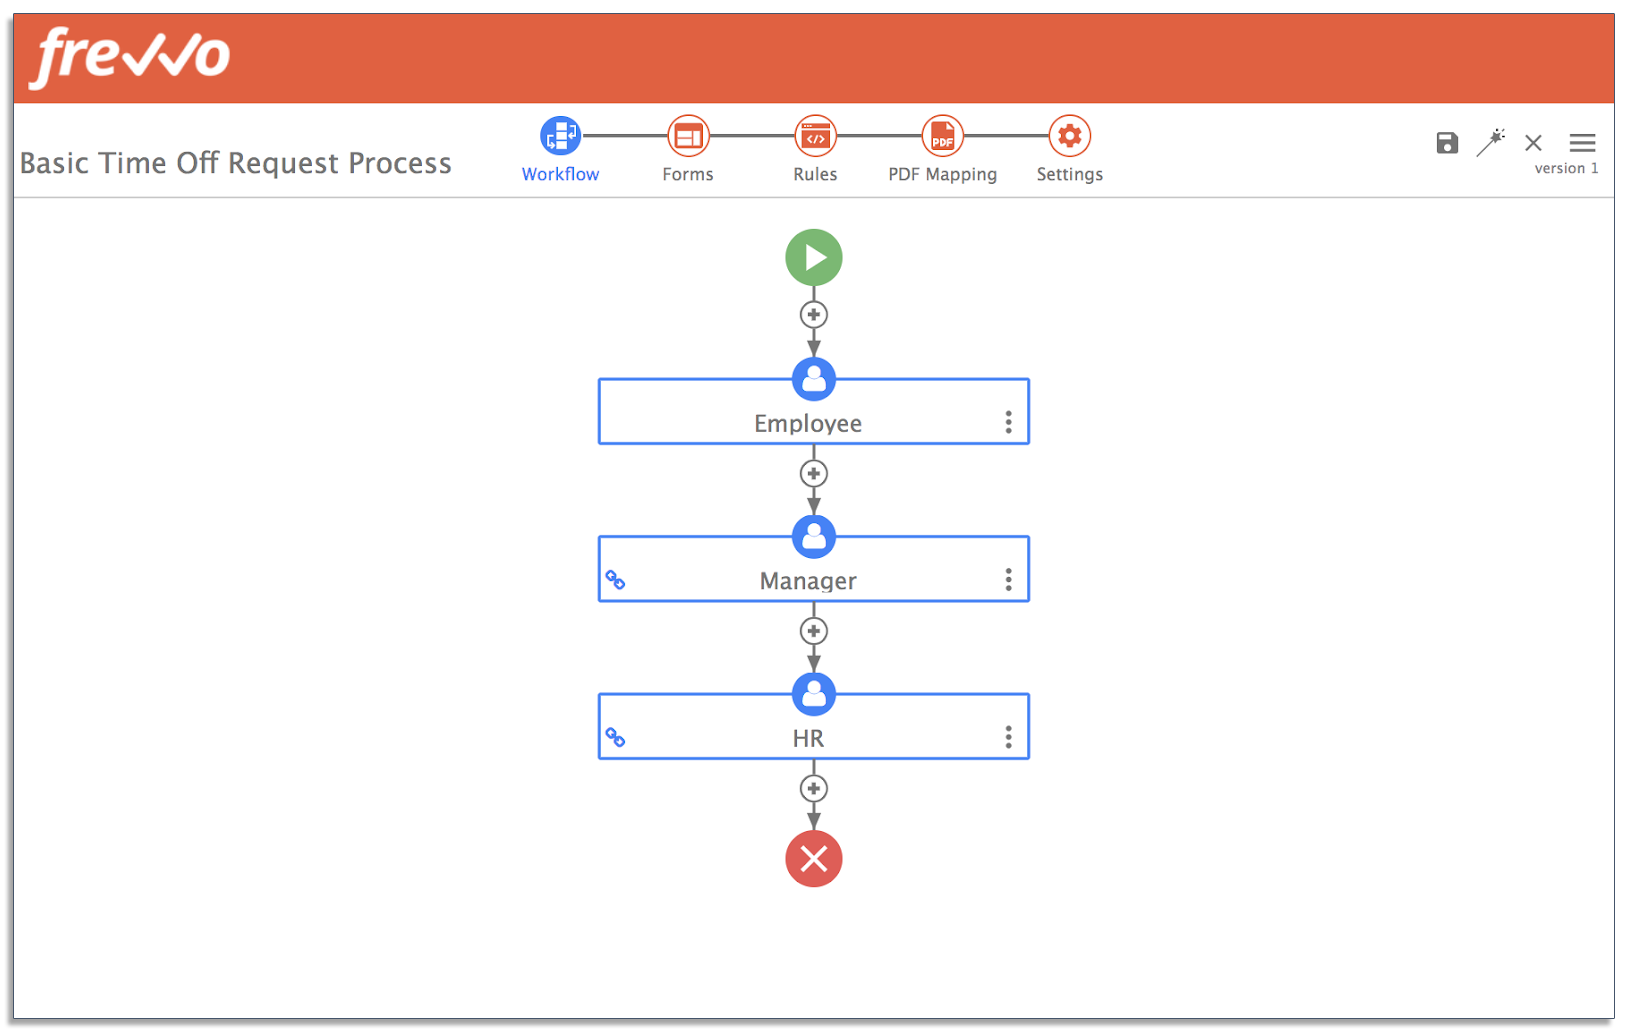 Time off request workflow in frevvo